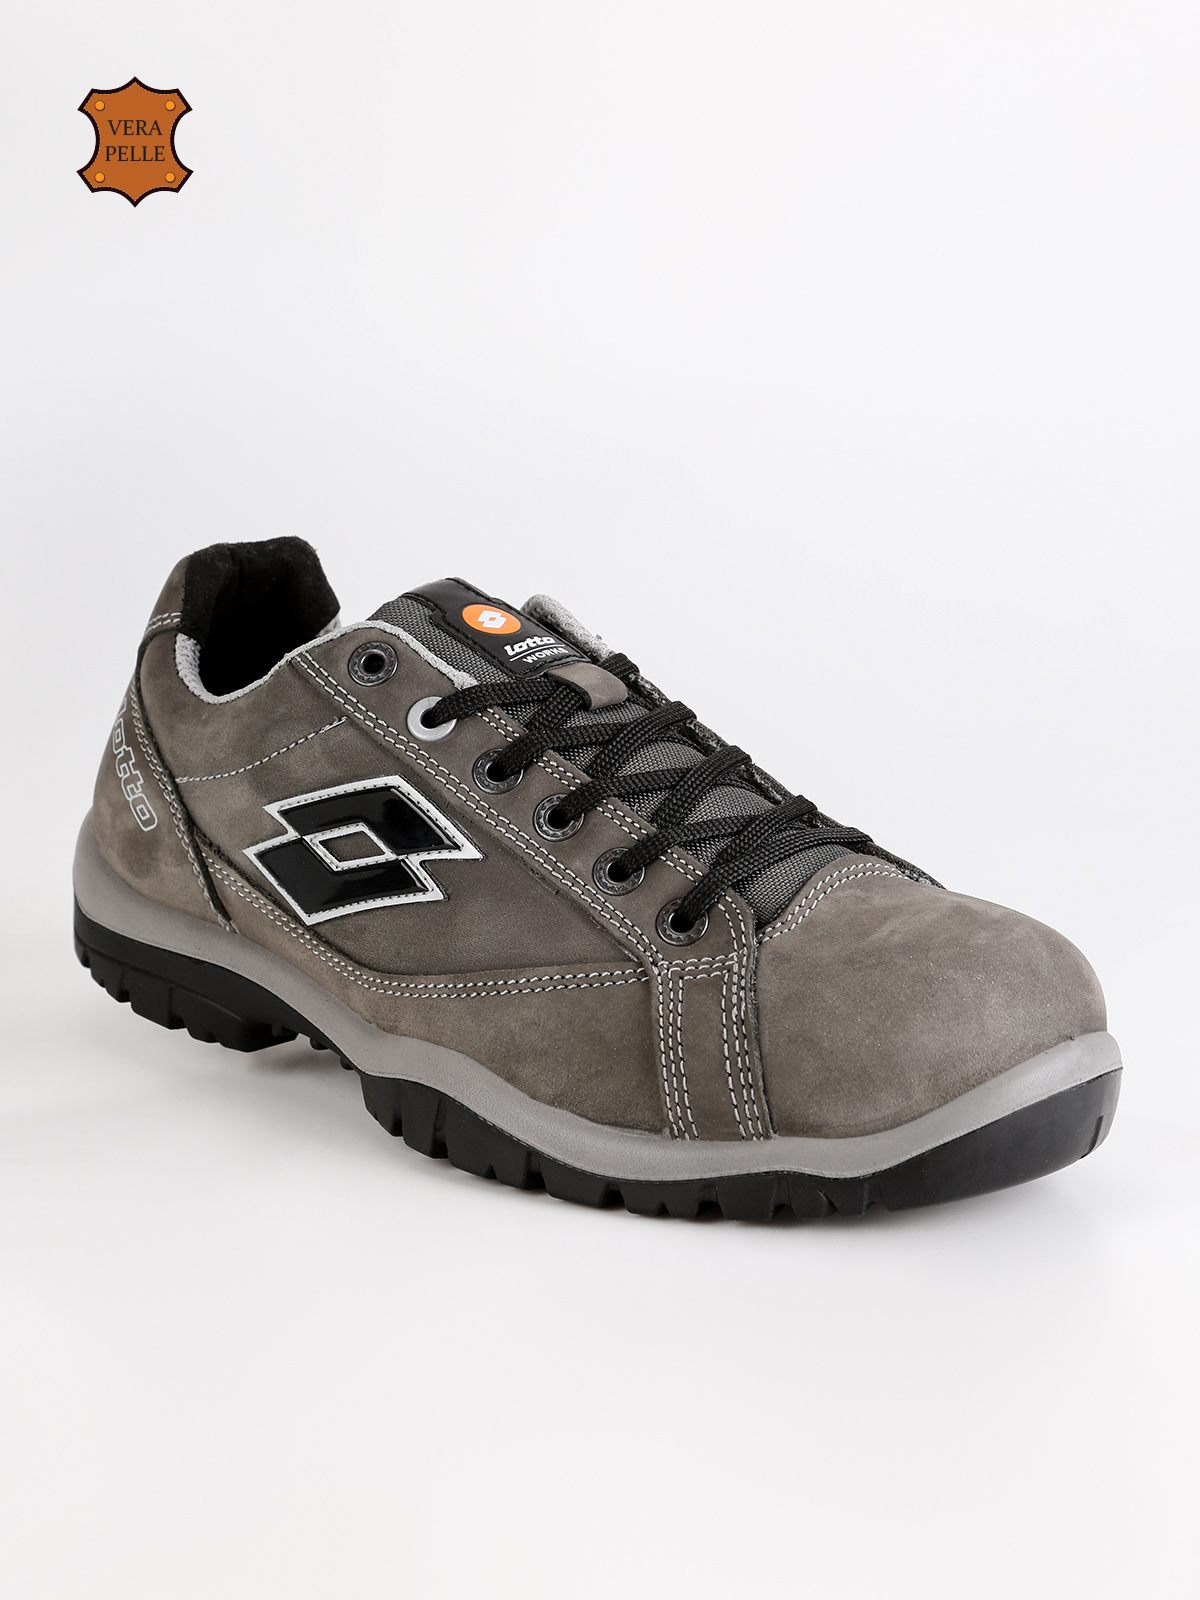 Leather Safety Work LOTTO-Scarpe